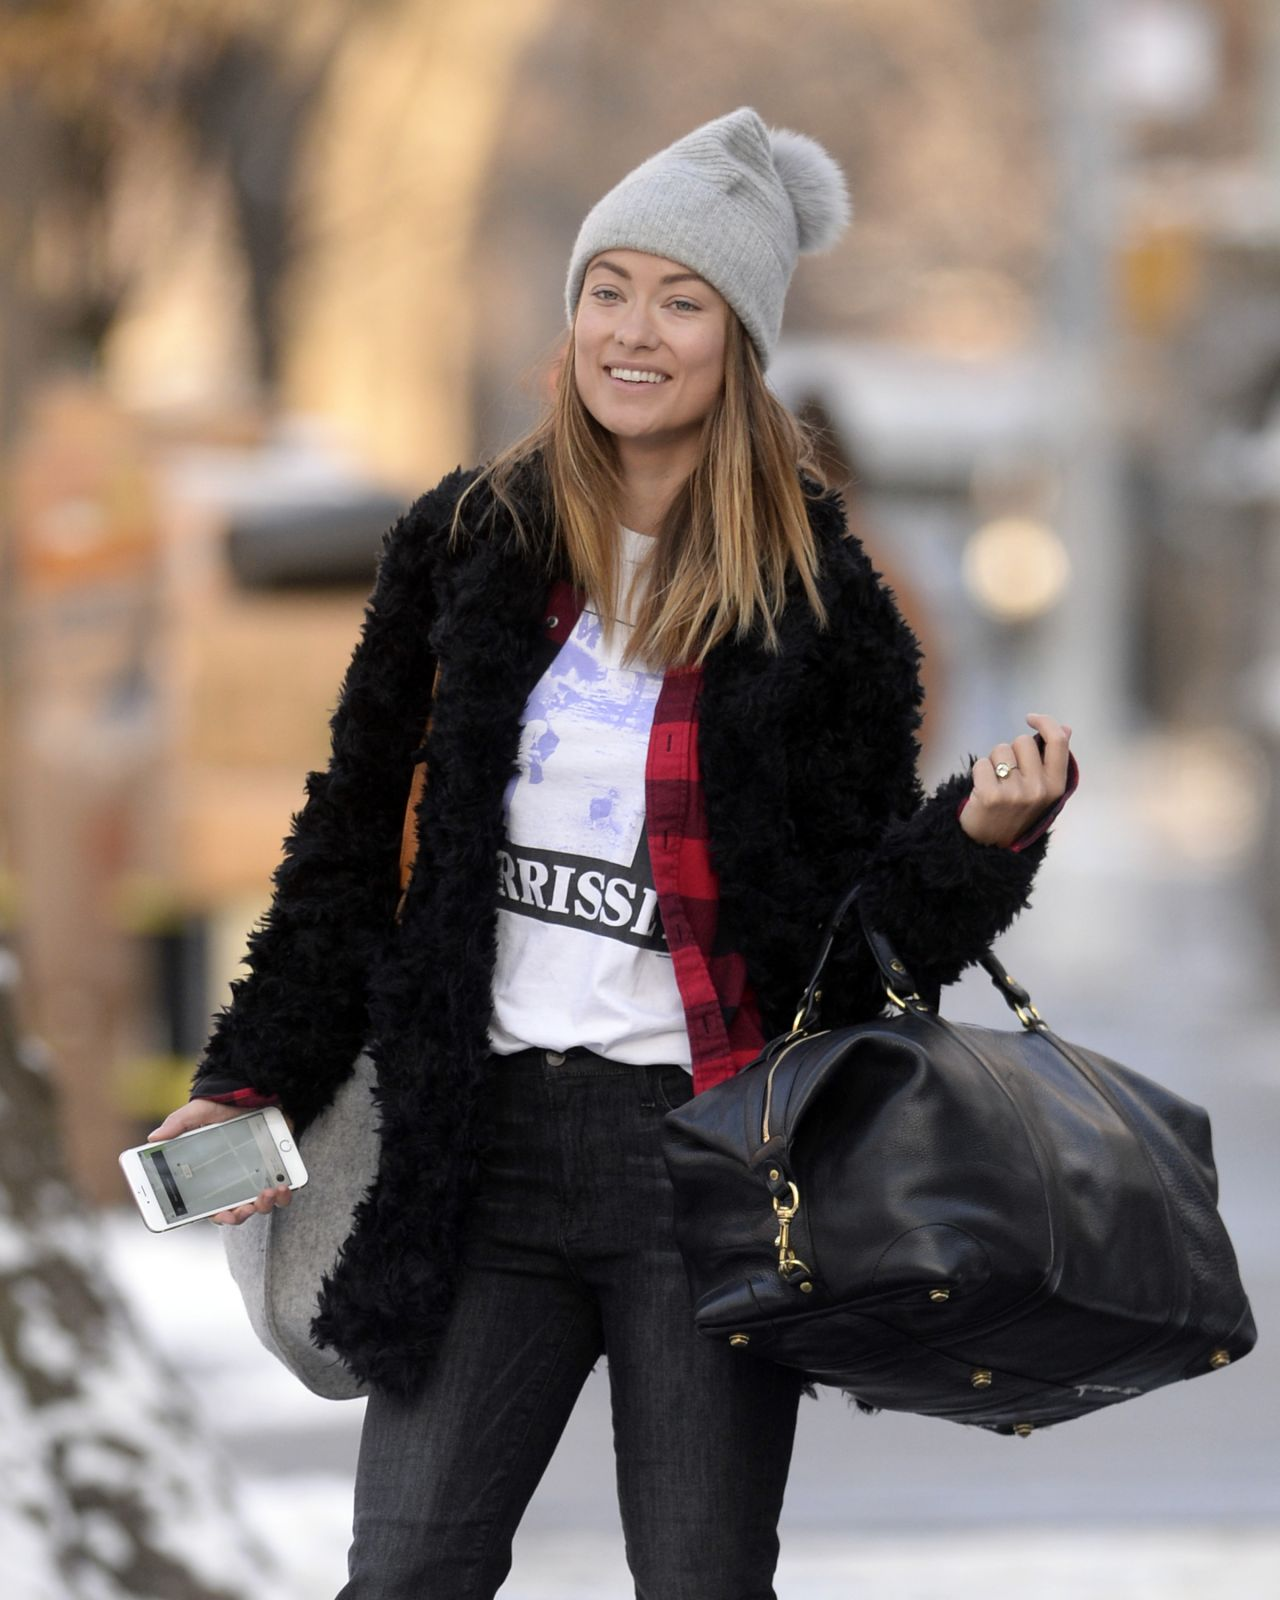 Olivia wilde leaving her hotel in nyc - 2019 year